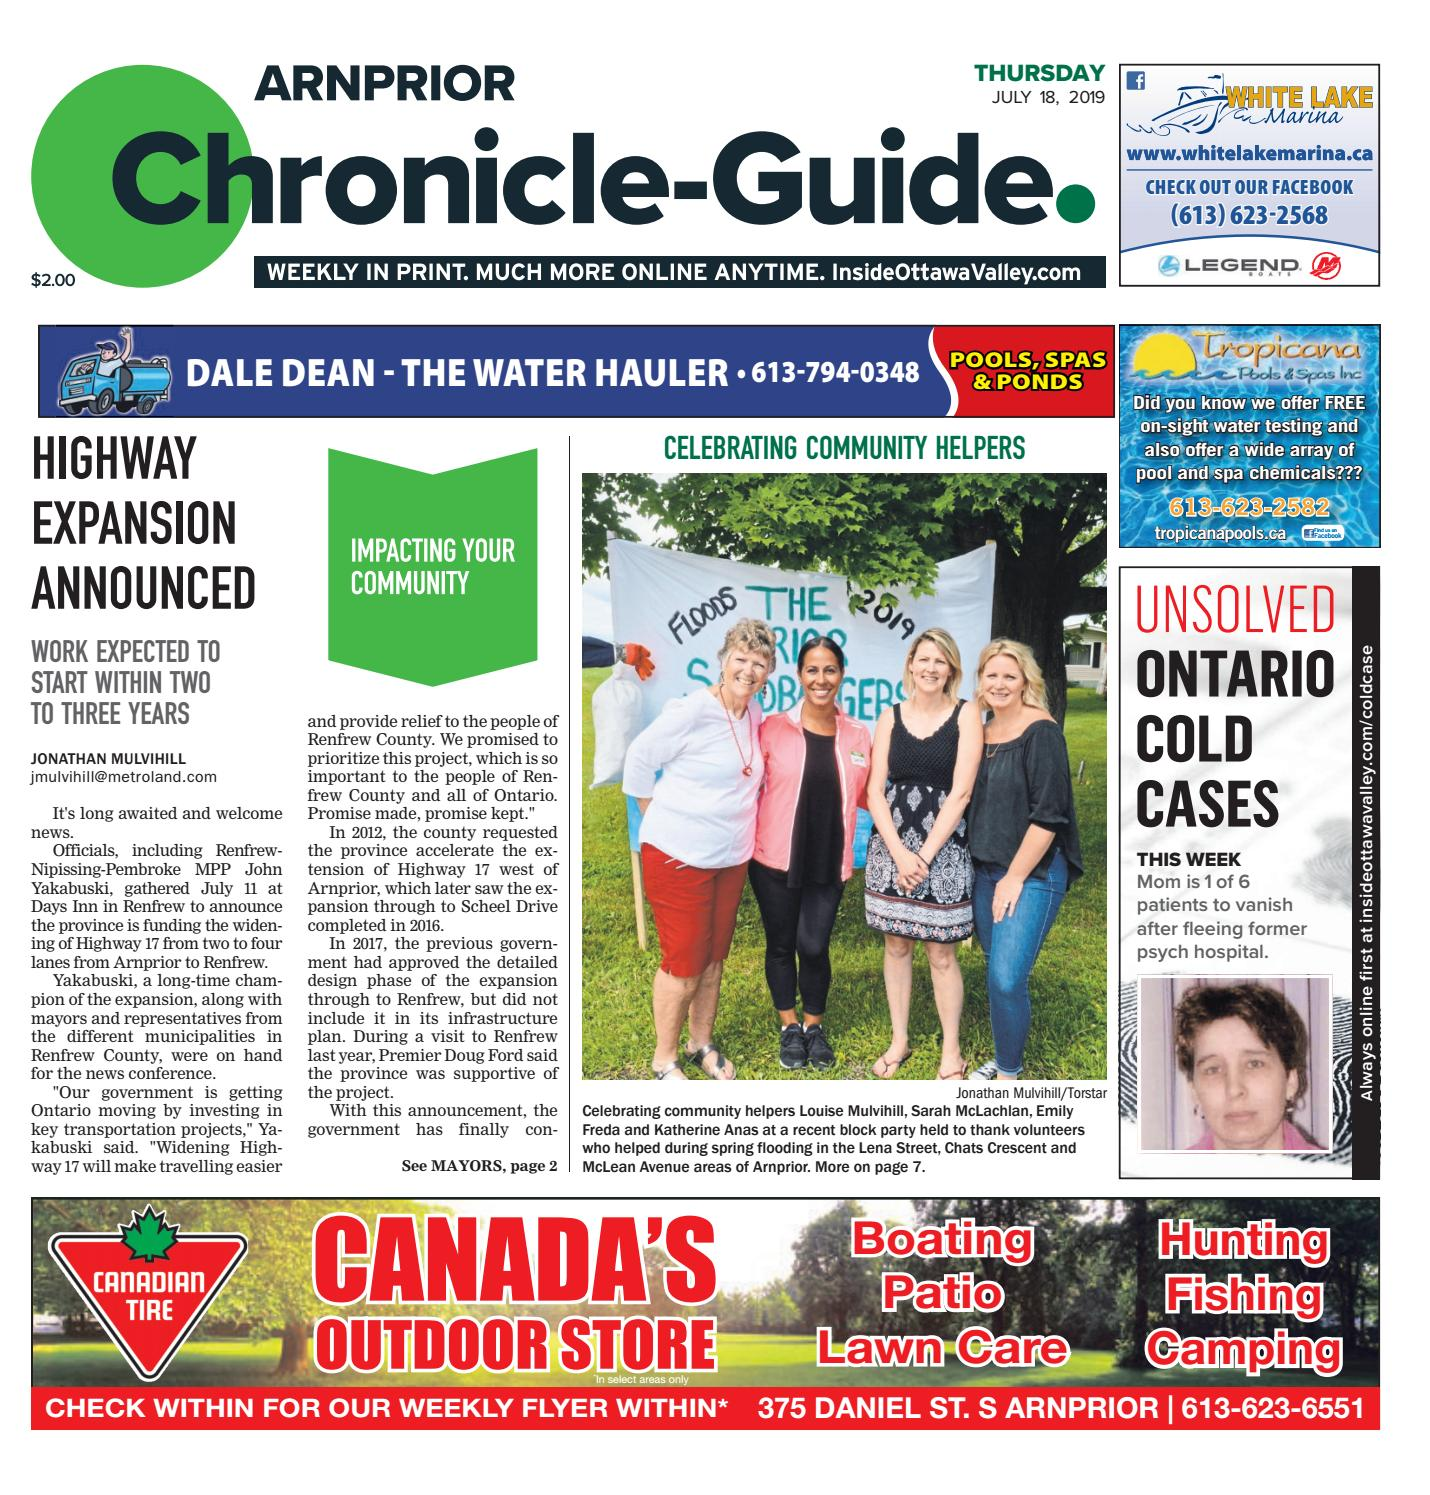 Arnprior Chronicle-Guide July 18, 2019 by Metroland East